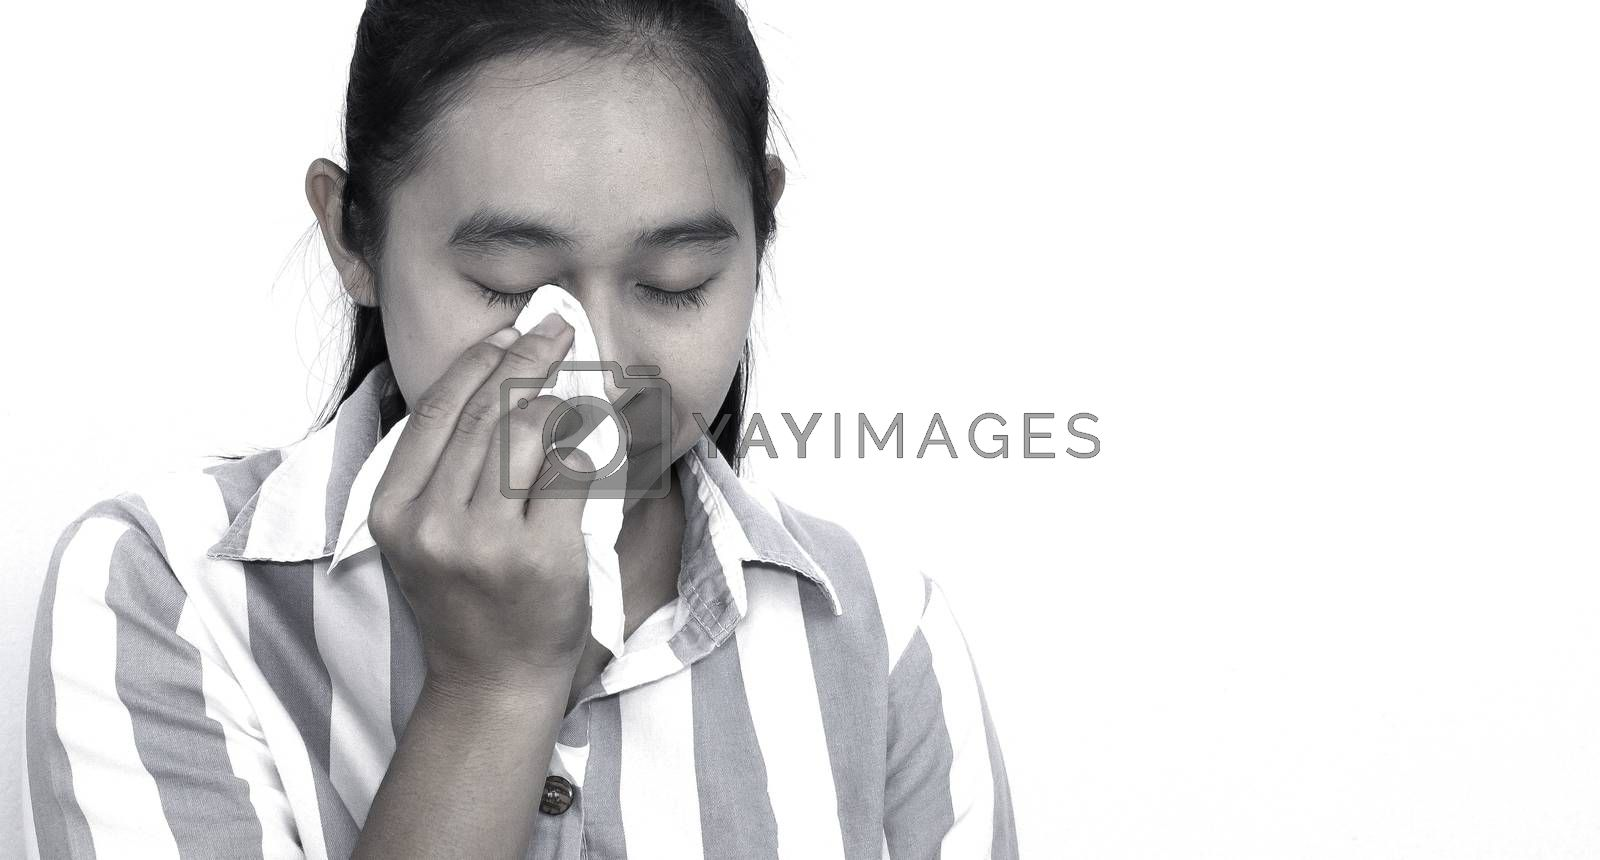 Asian young woman has eyes irritation or eye problemb, using tissue paper wipe tear. Isolated on white background. Health and medical concept.